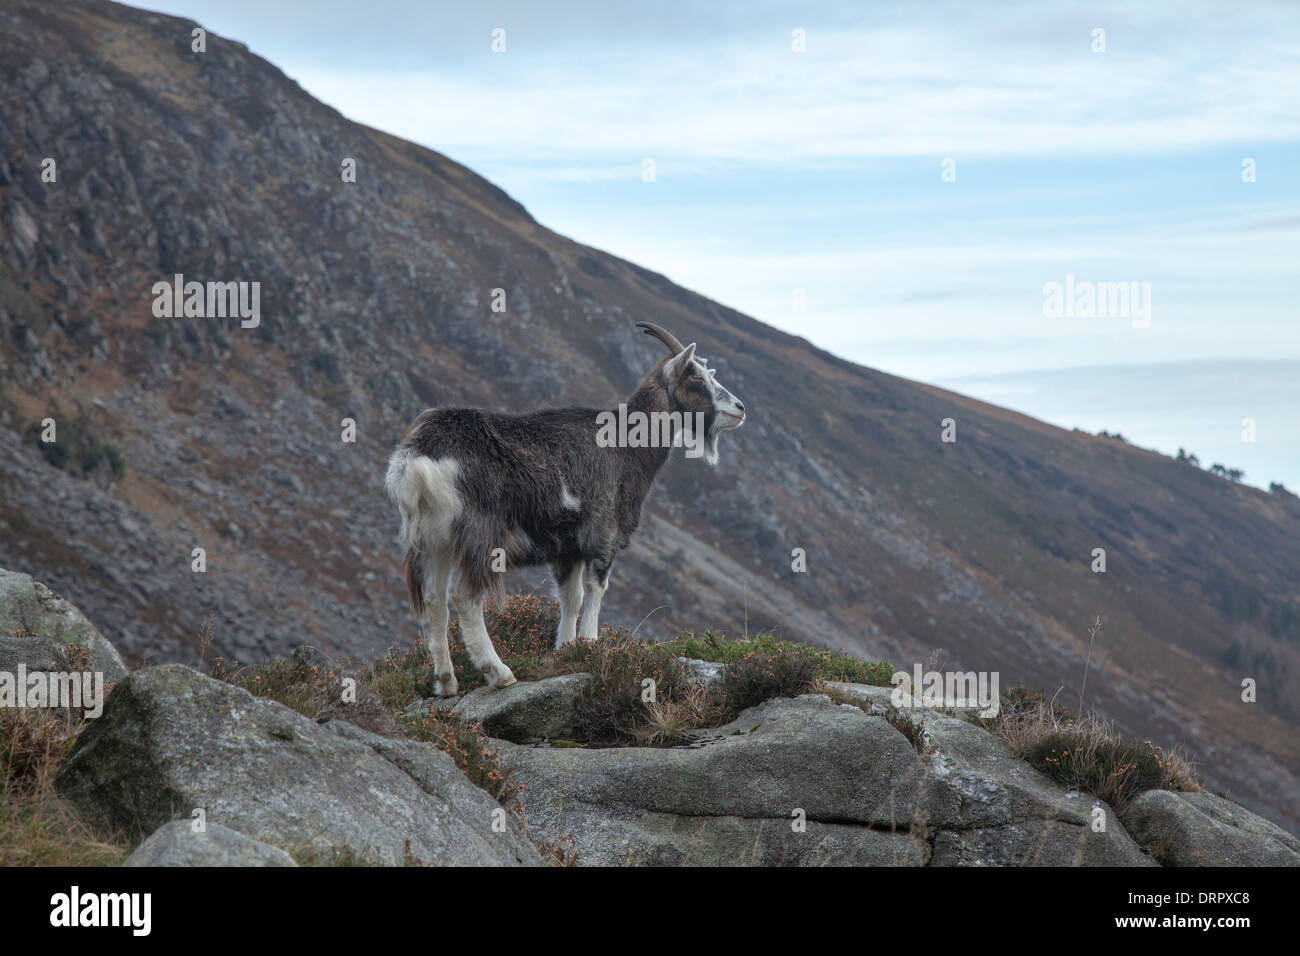 Feral goat in the upper Glendalough valley, Wicklow Mountains National Park, County Wicklow, Ireland. - Stock Image